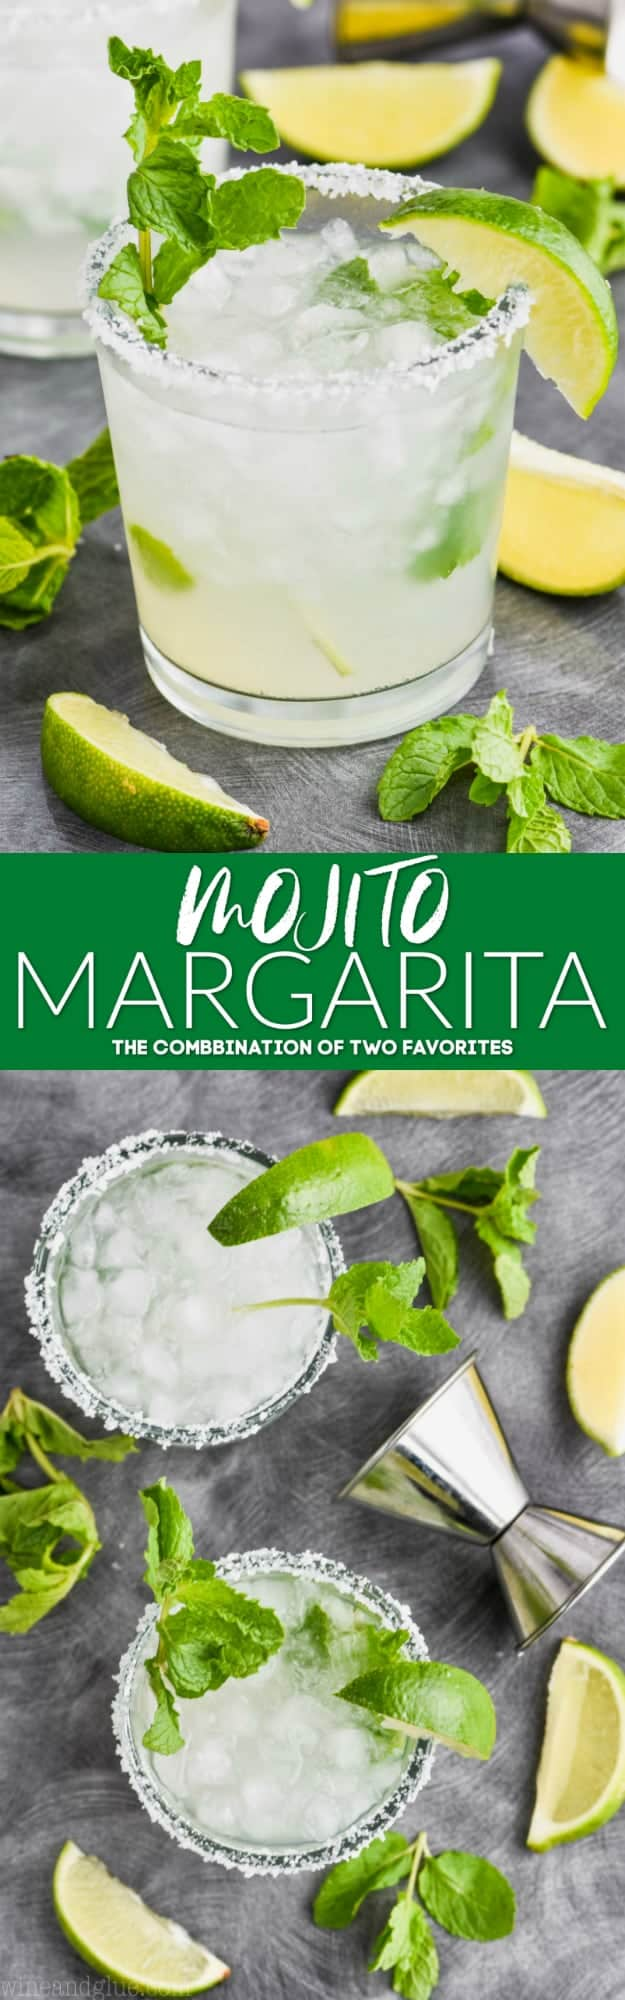 collage of photos of mojito margarita